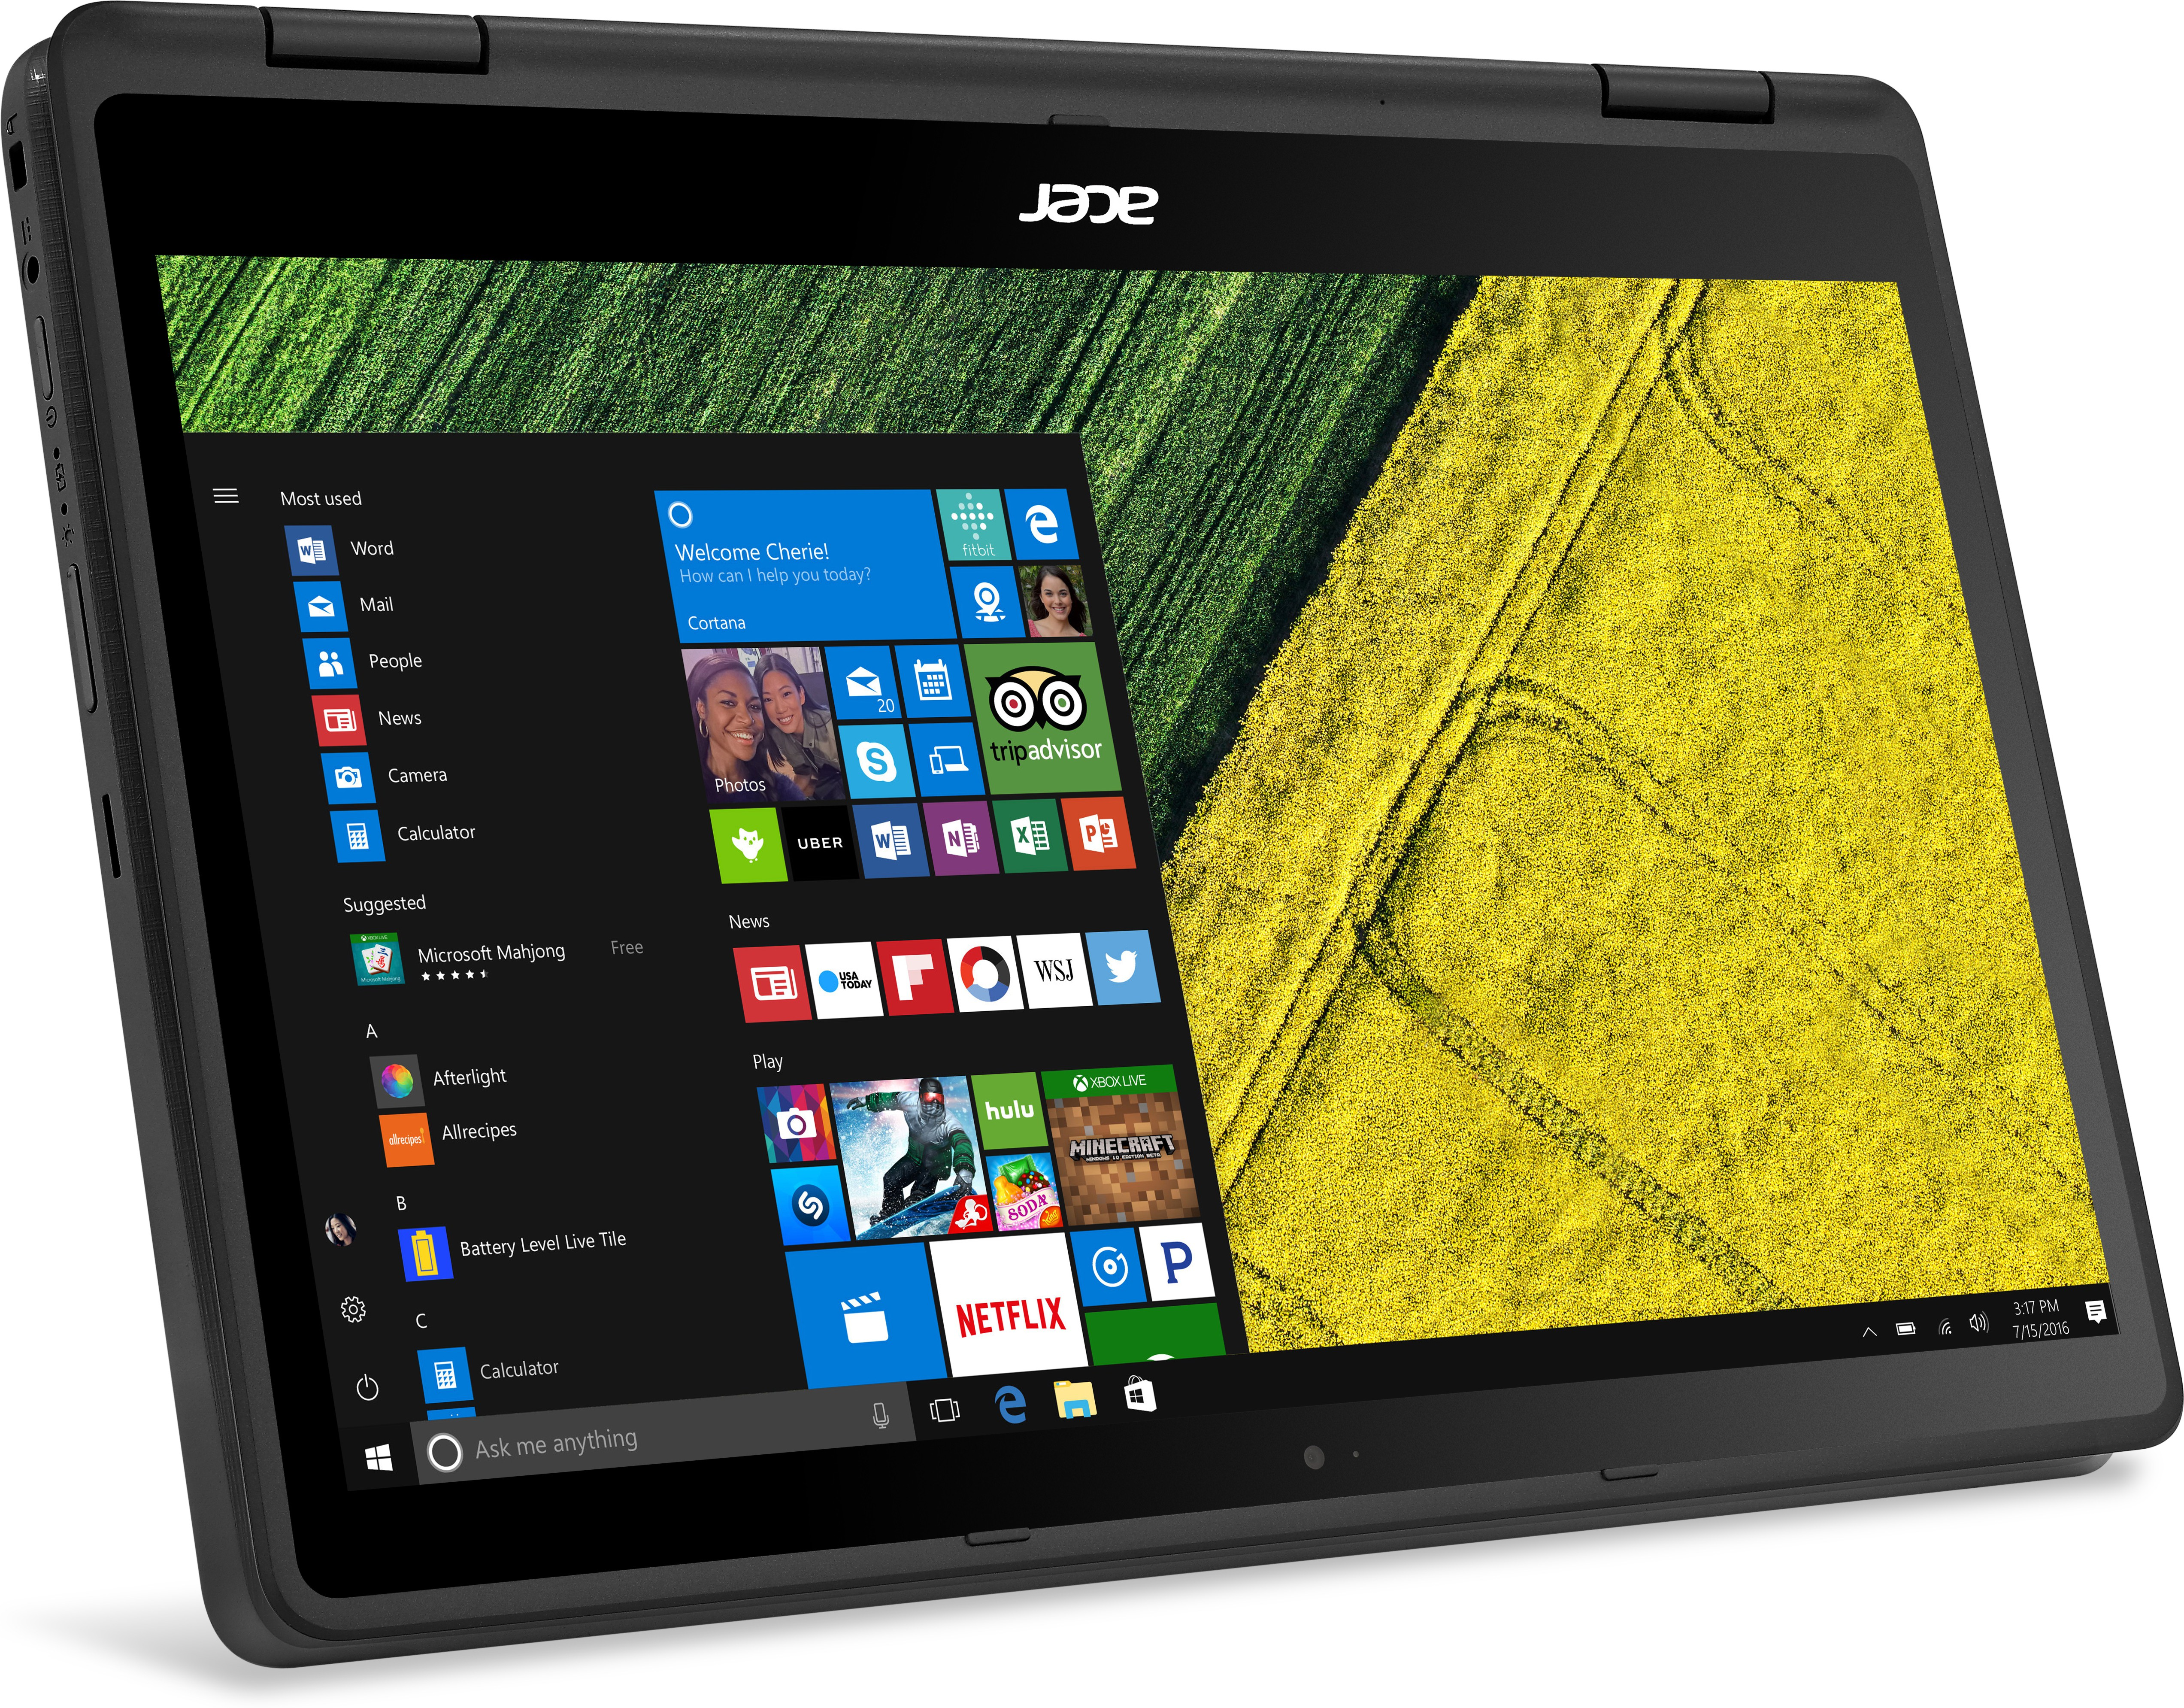 Acer Spin 5 Core i3 7th Gen - (4 GB/256 GB SSD/Windows 10 Home) SP513-51 2 in 1 Laptop(13.3 inch, Black, 1.6 kg)   Laptop  (Acer)